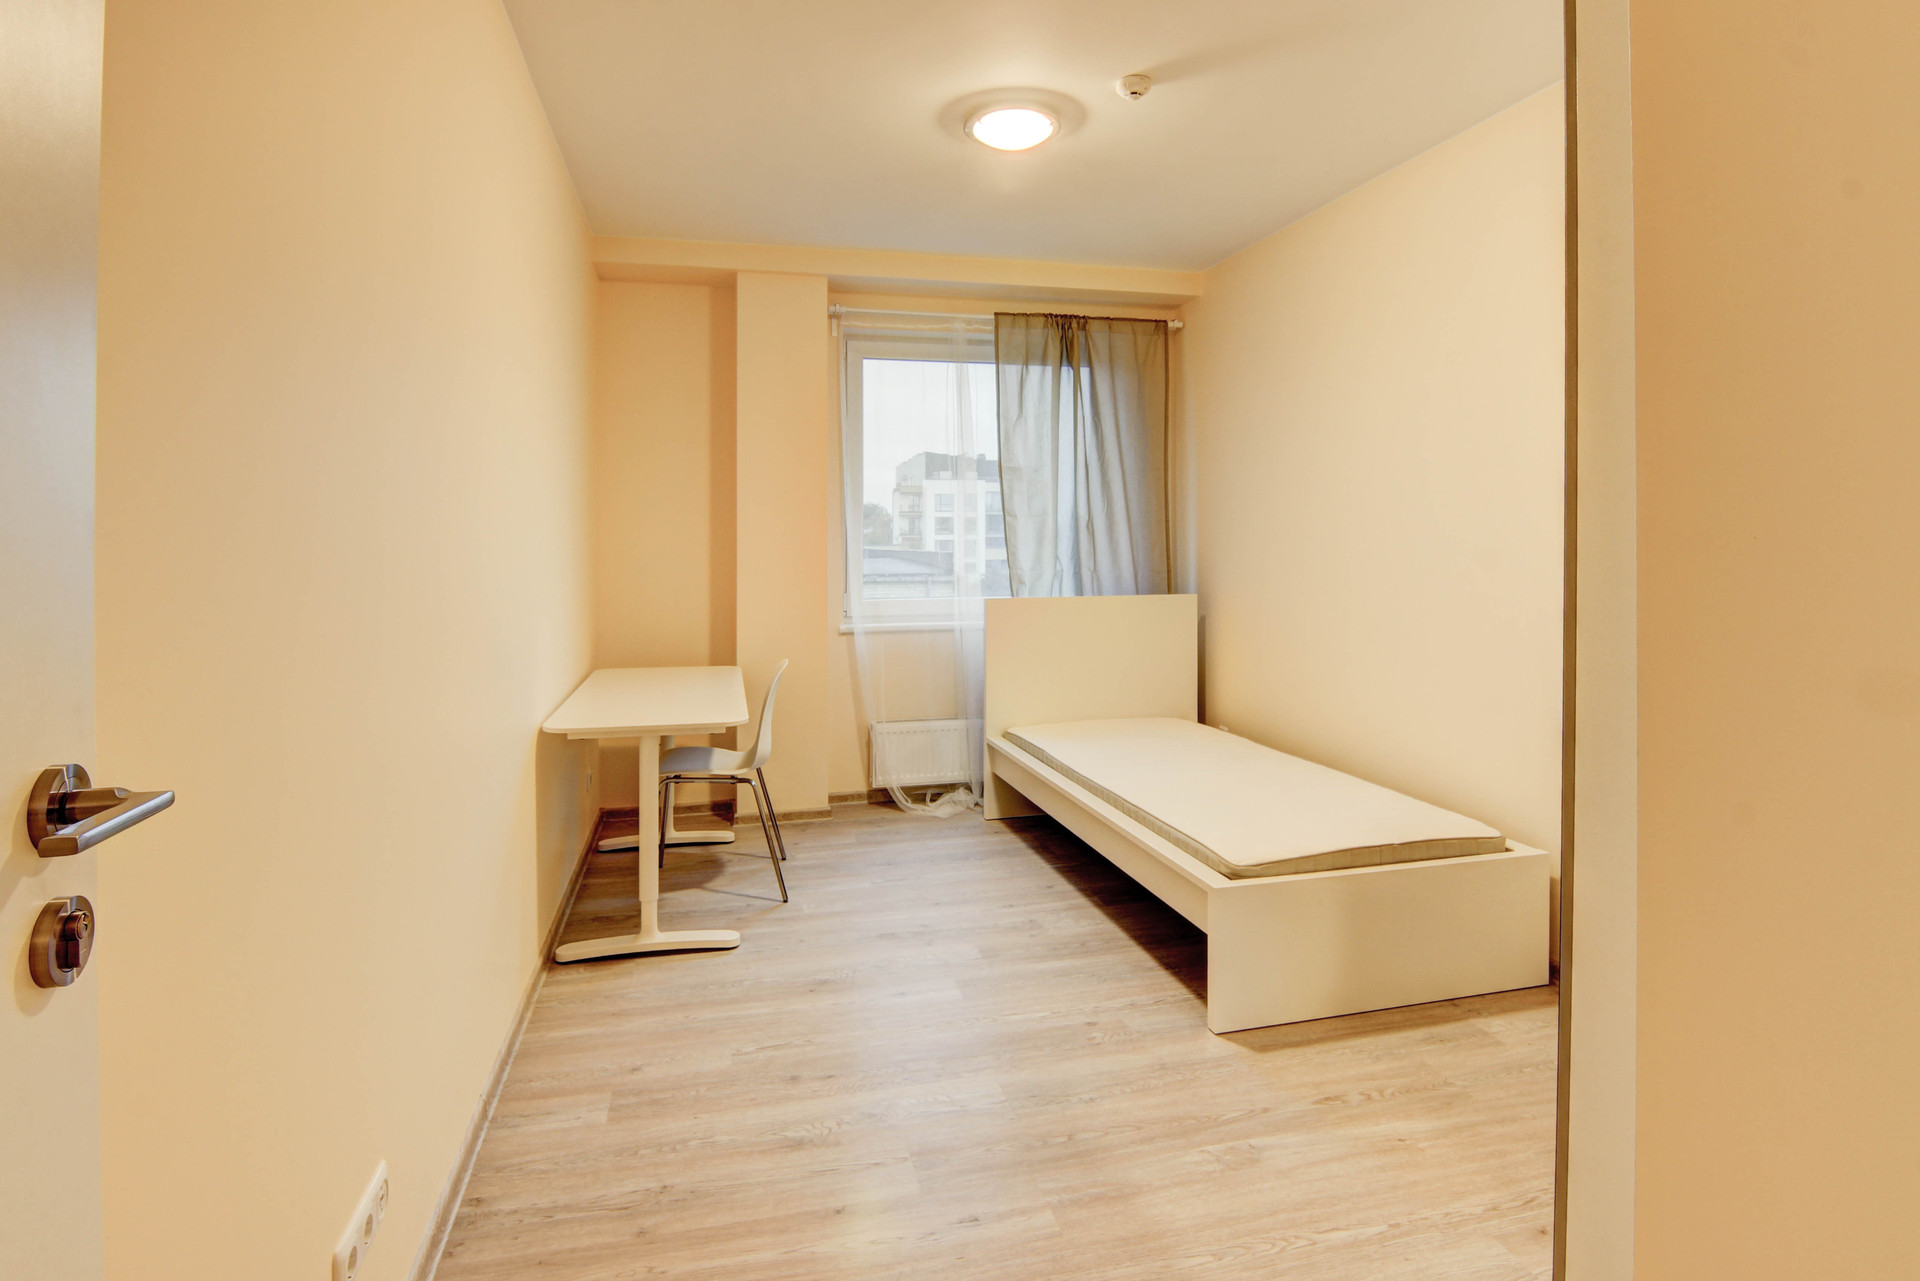 Sunny and spacious room in brand new 3room apartment  Room for rent Vilnius